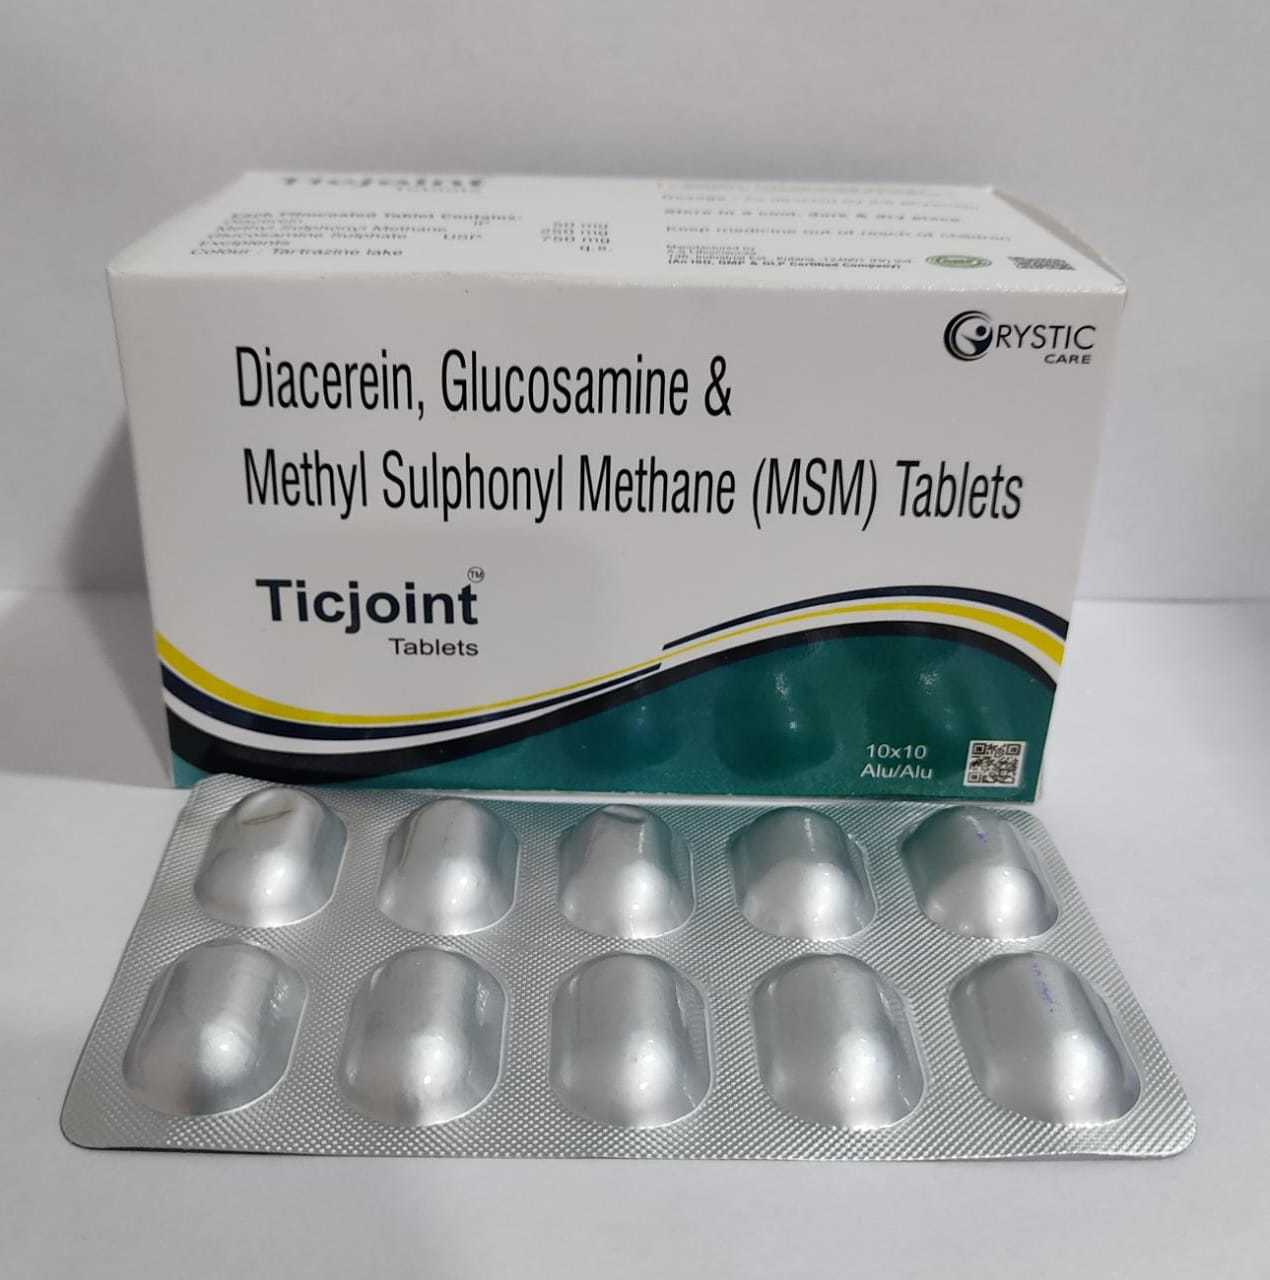 Diacerein Glucosamine & Methl Sulphonyl Methane MSM Tablet